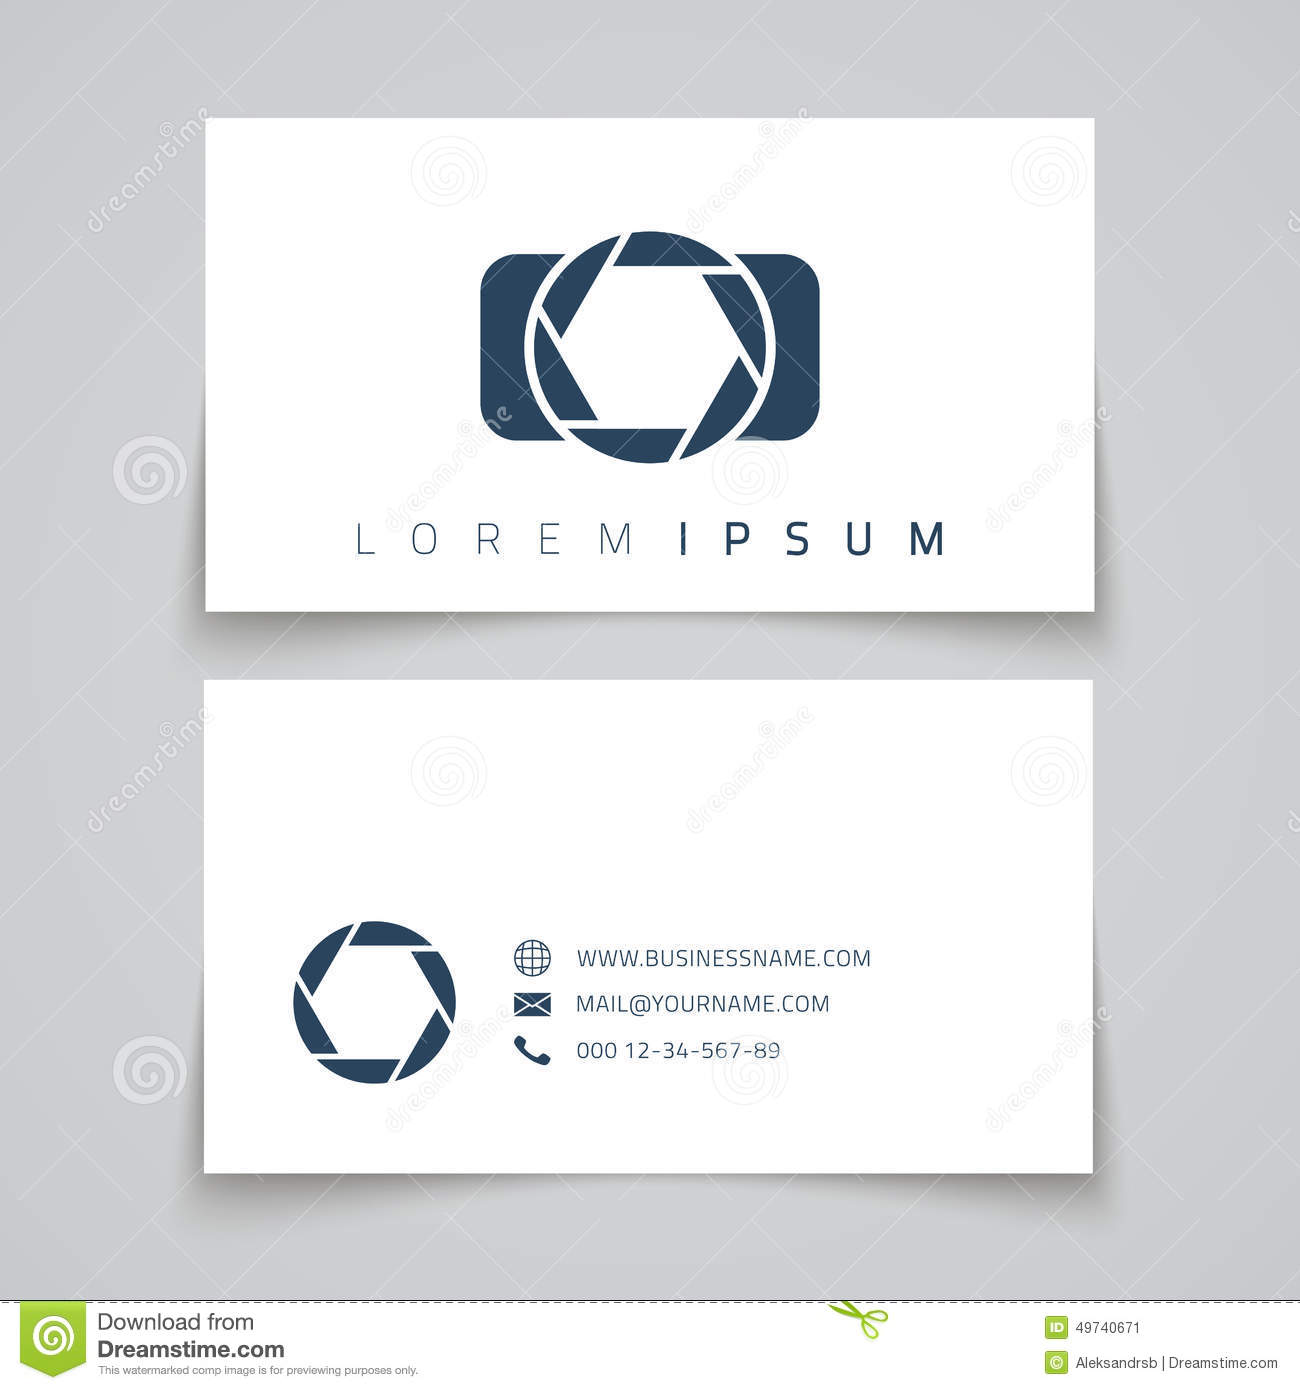 Business card template camera conceptl logo stock vector download business card template camera conceptl logo stock vector illustration of corporate 35mm reheart Gallery